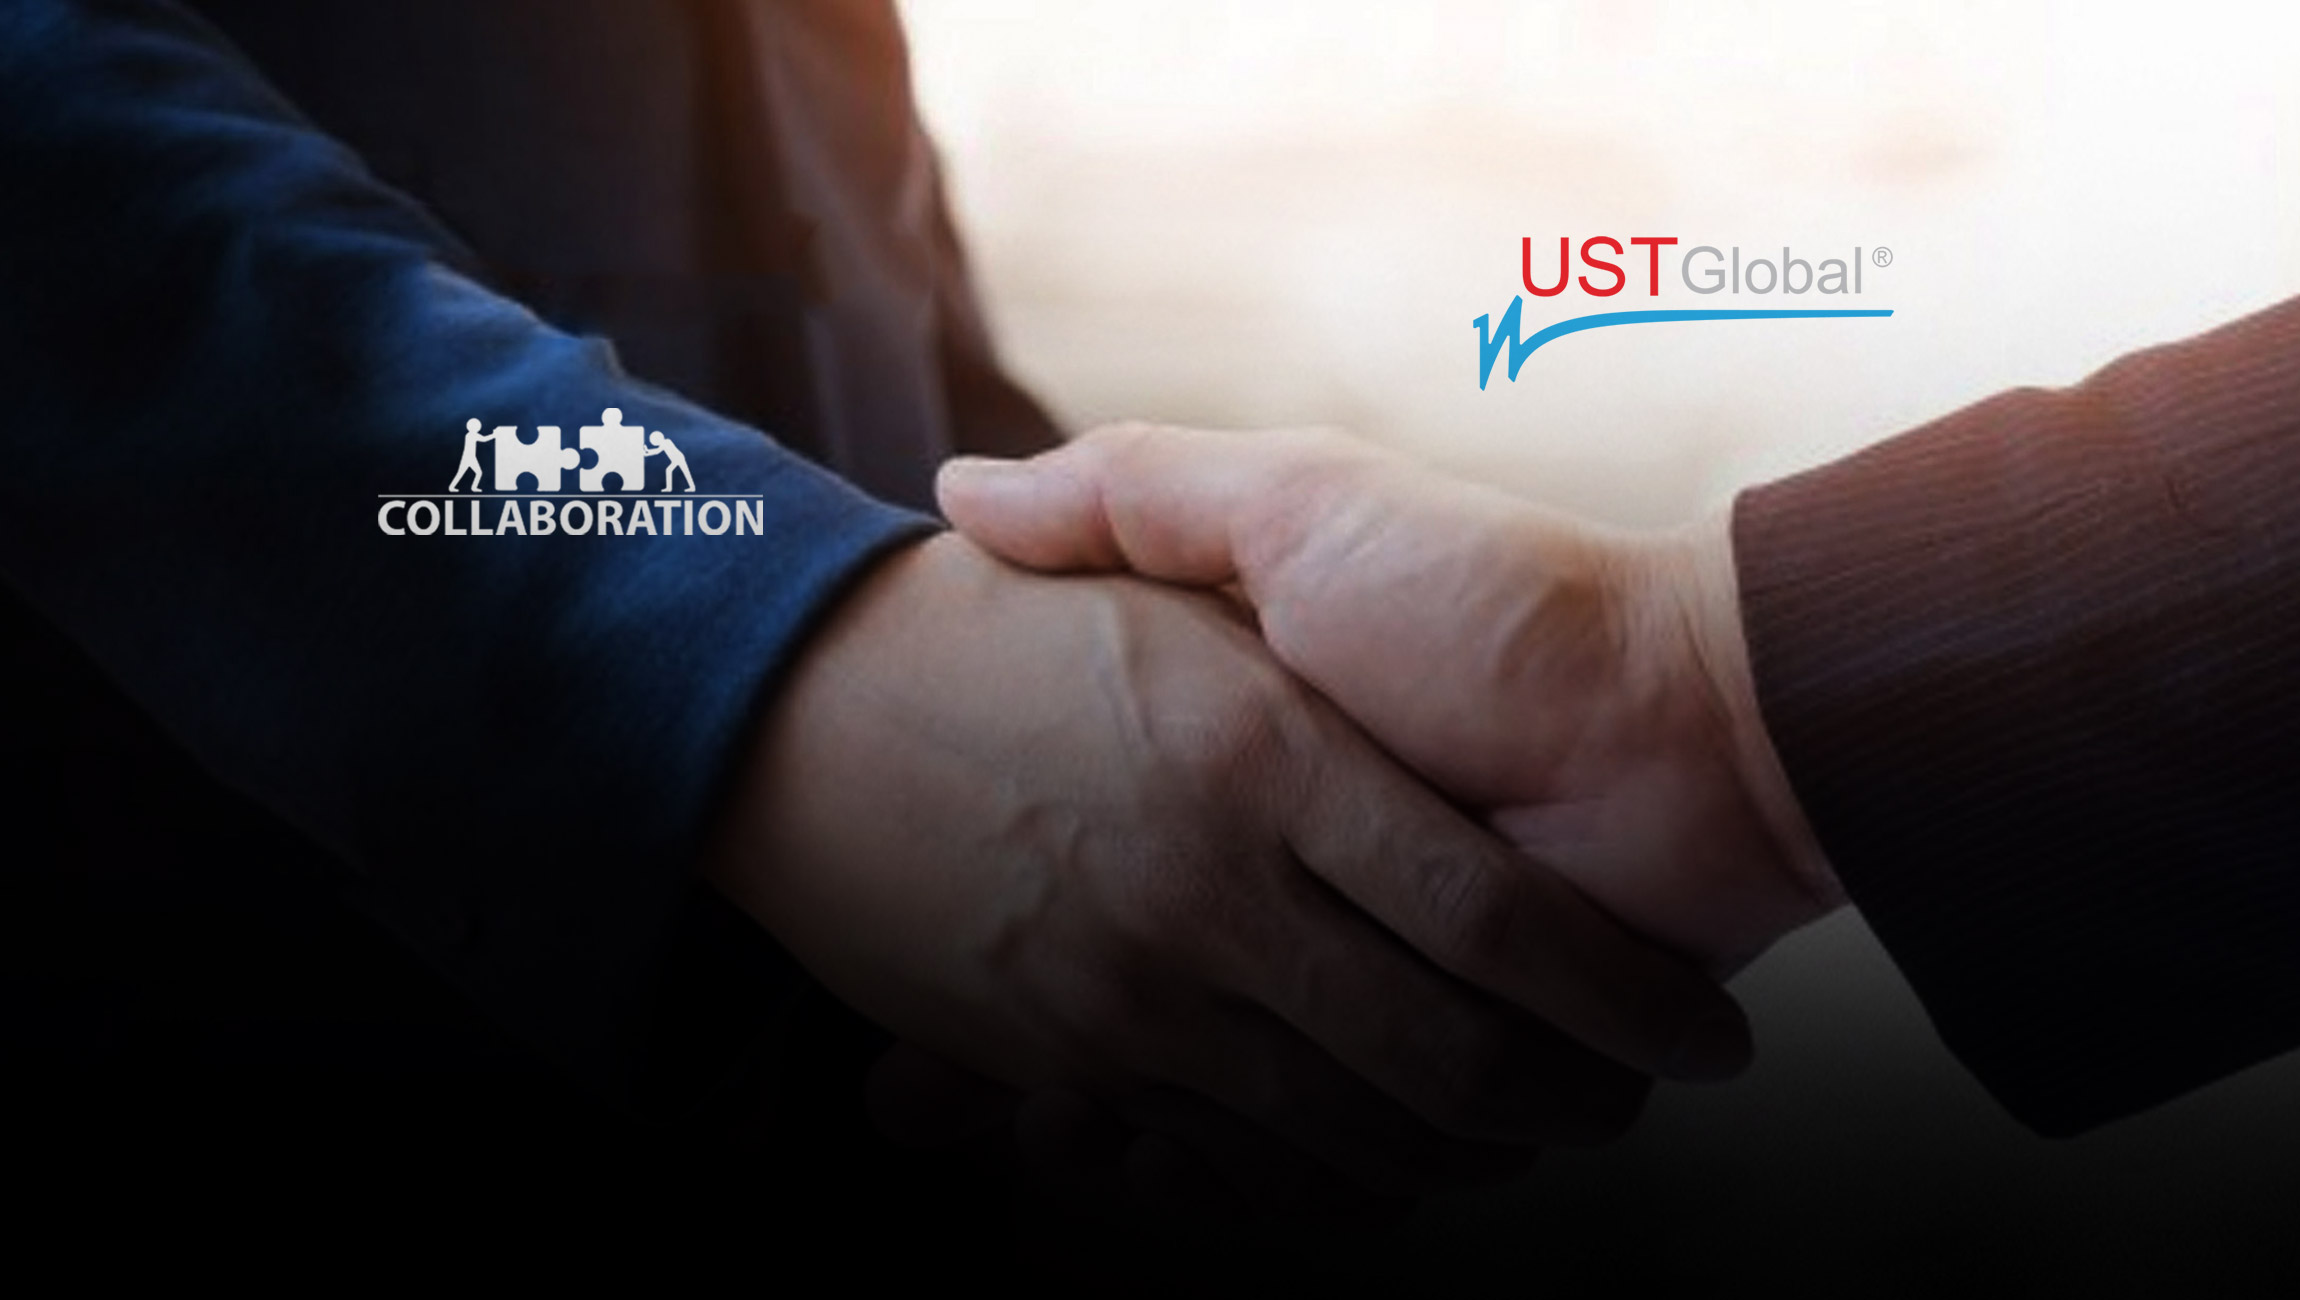 UST Global Recognized as 'IT Service Provider of the Year 2020' by Everest Group